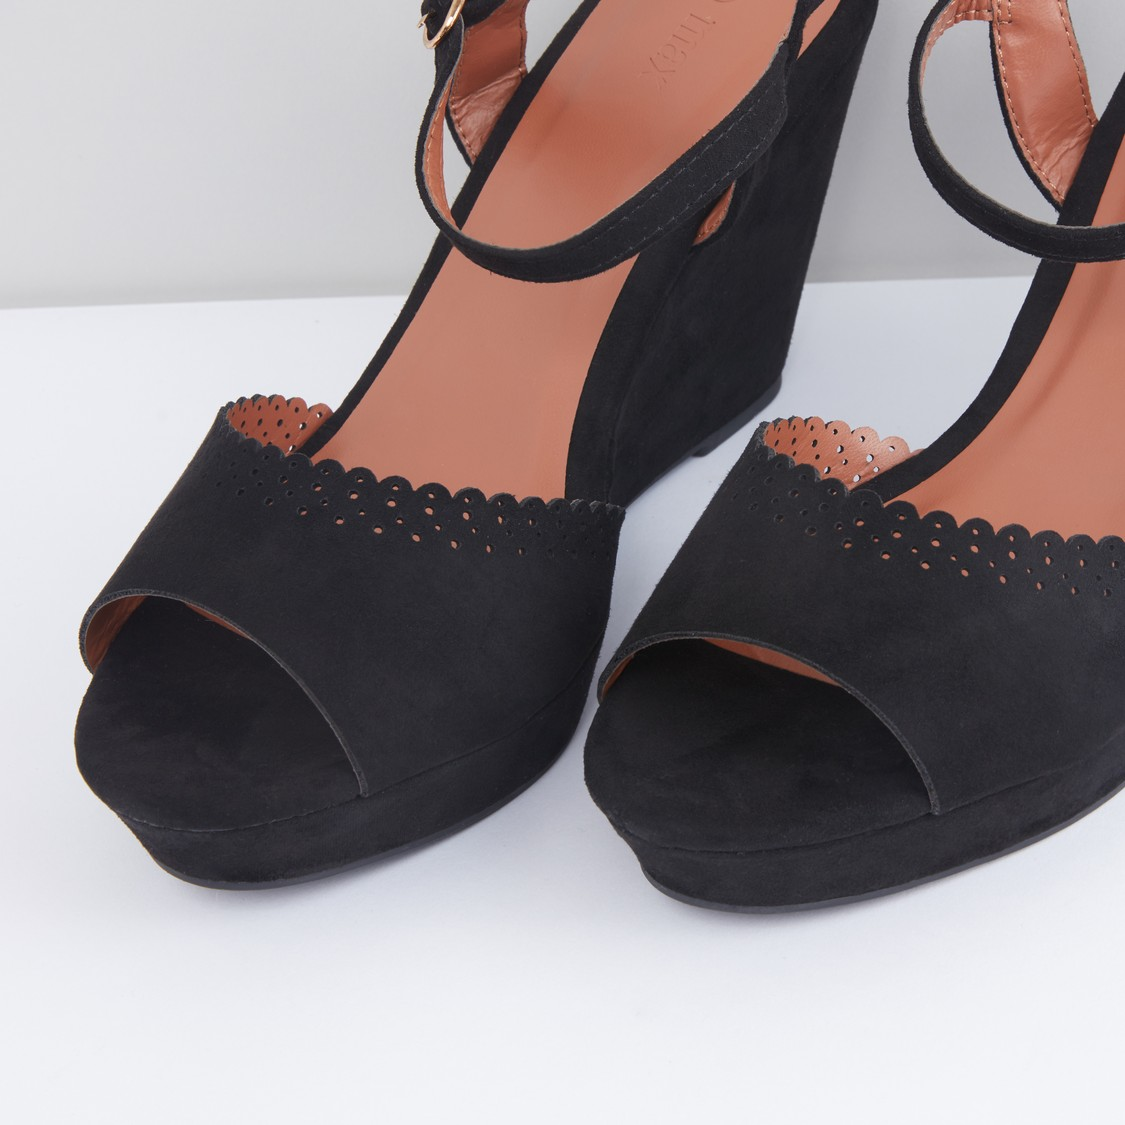 Ankle Strap Sandals with Wedge Heels and Cutwork Detail